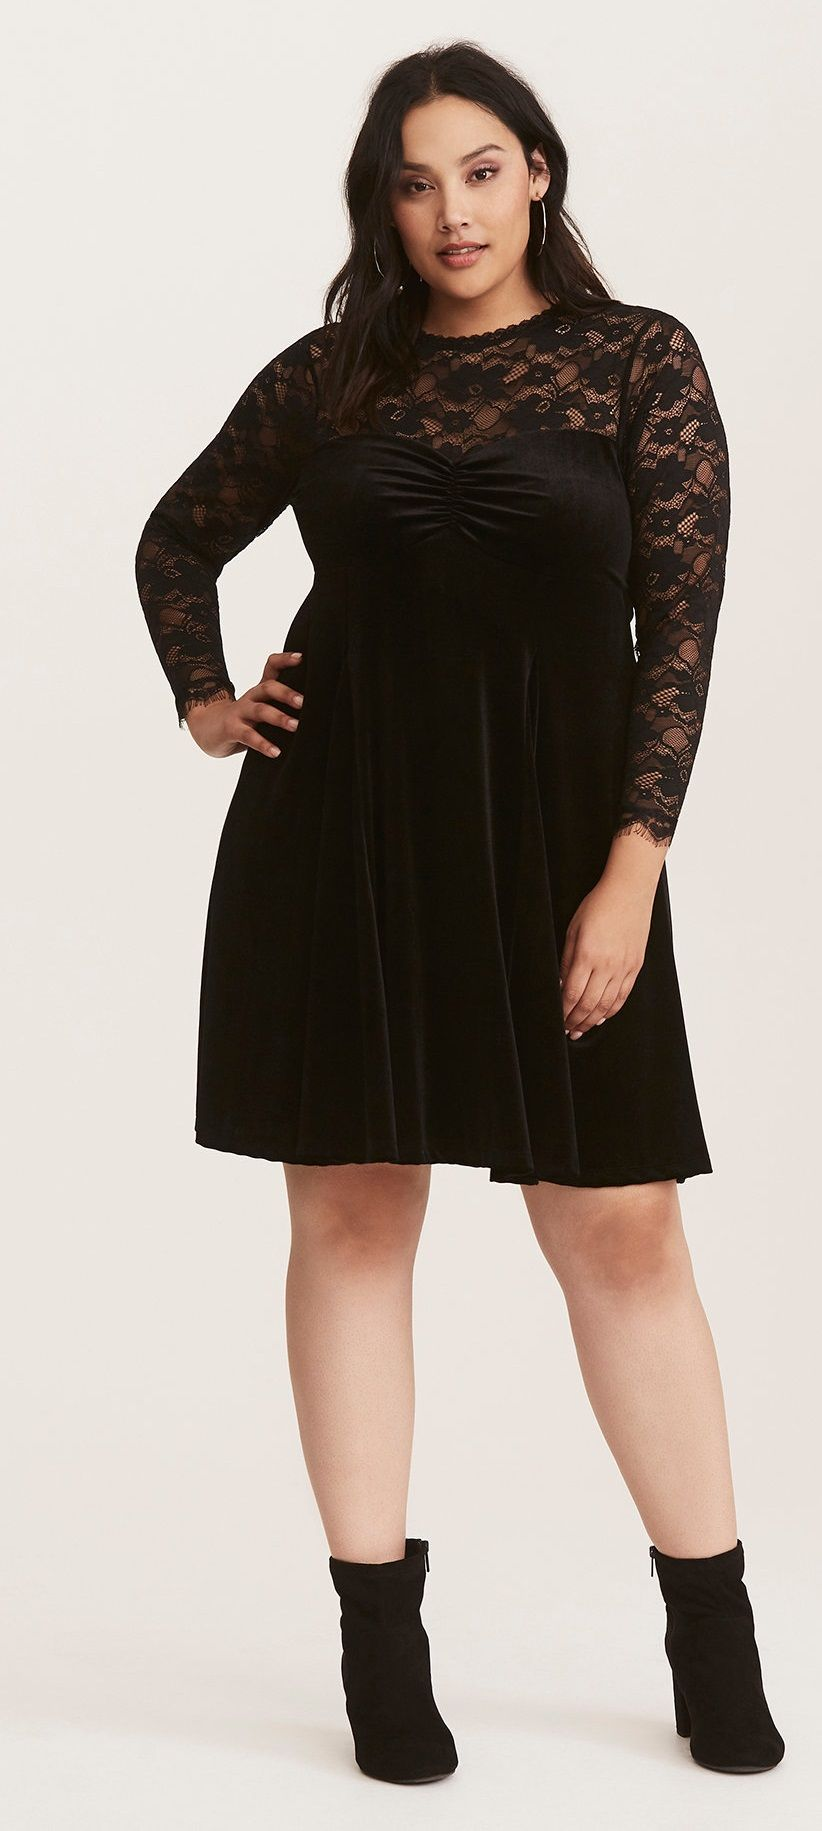 052d7888334 Plus Size Velvet   Lace Dress - Plus Size Holiday Party Dress - Plus Size  Cocktail Dress  plussize